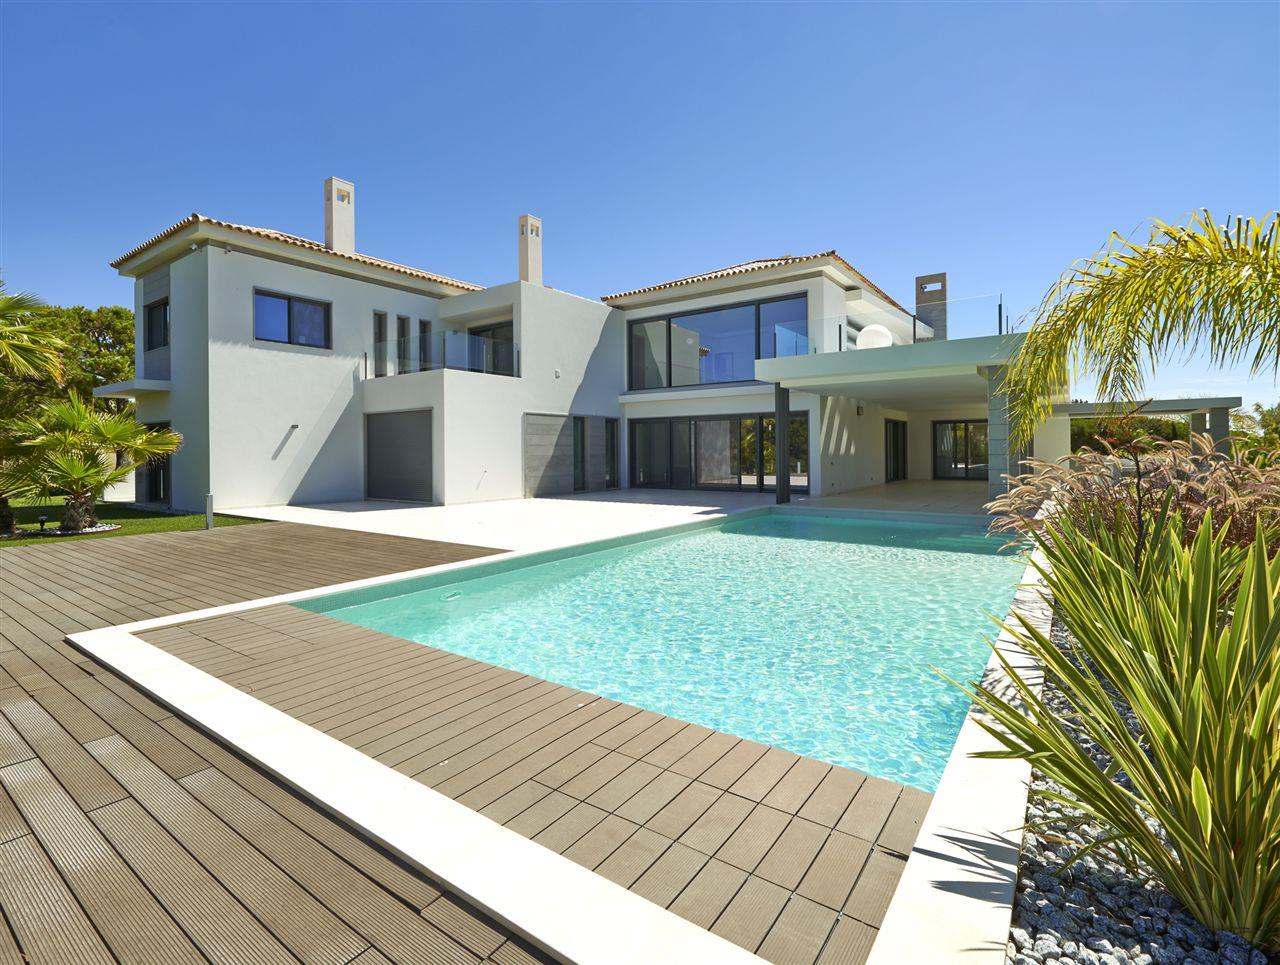 Single Family Home for Sale at House, 5 bedrooms, for Sale Loule, Algarve, 8135-024 Portugal